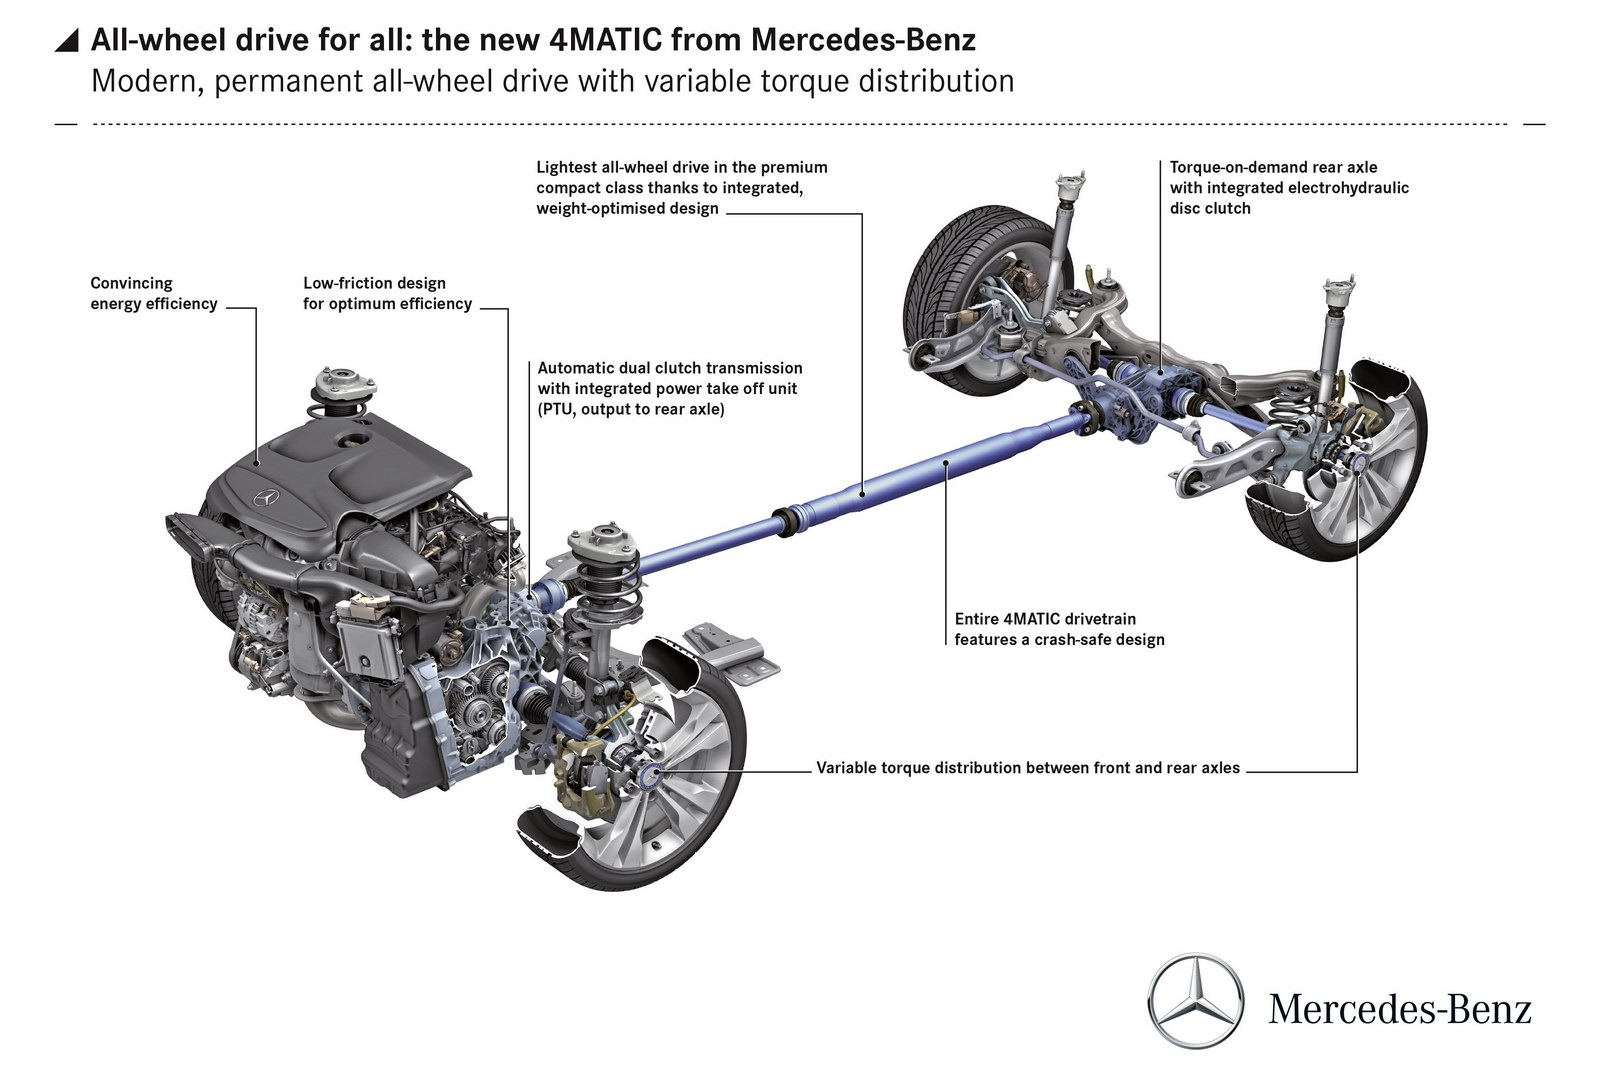 Mercedes Details New 4Matic Front-Biased AWD System for